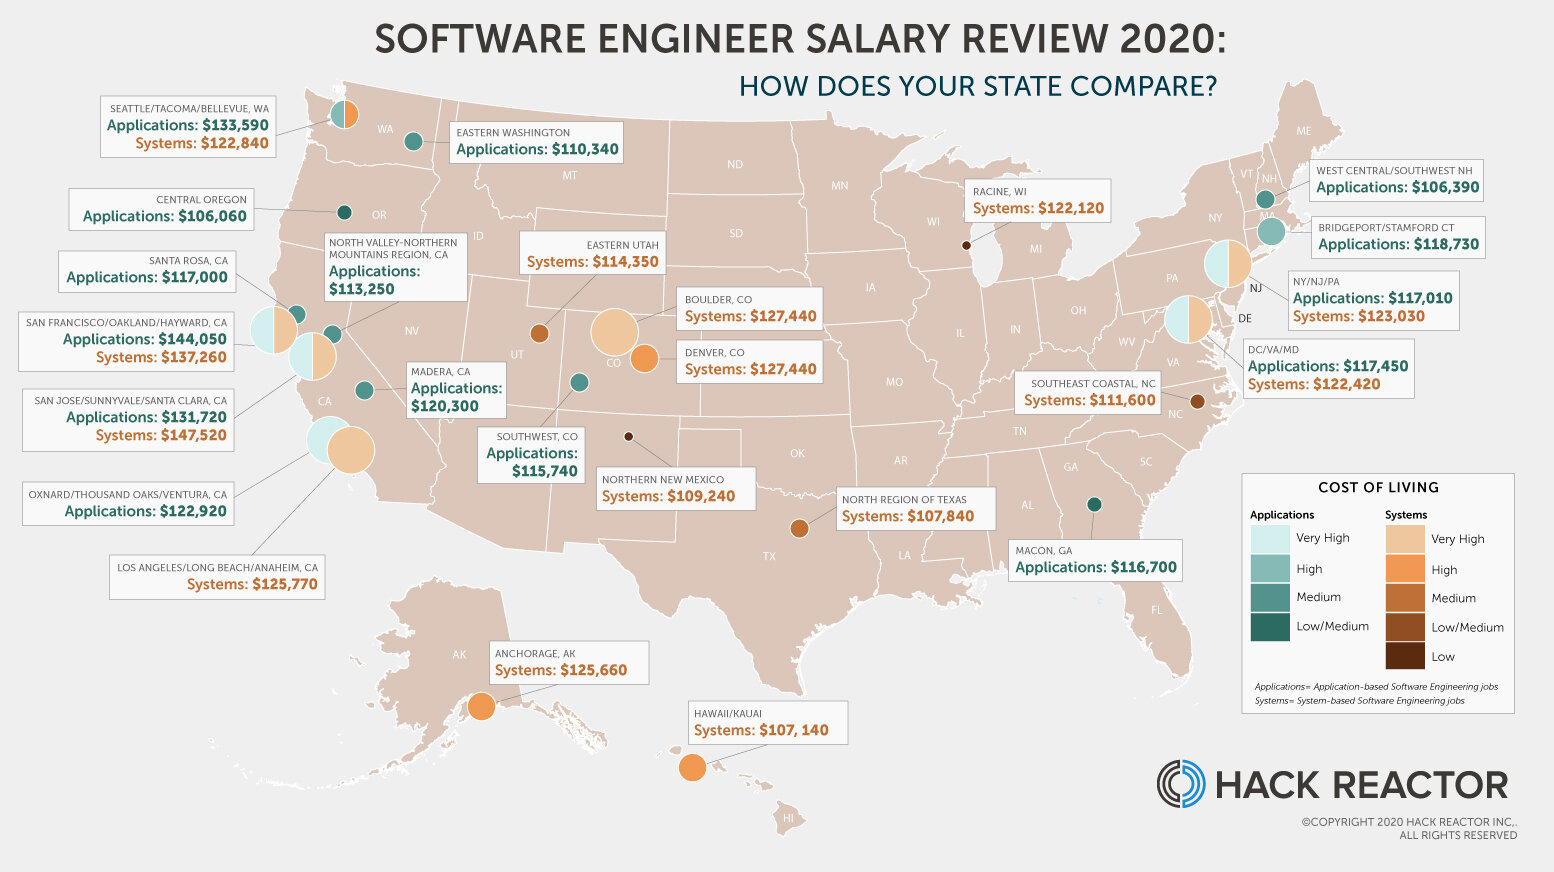 Software Engineer Salary Review 2020